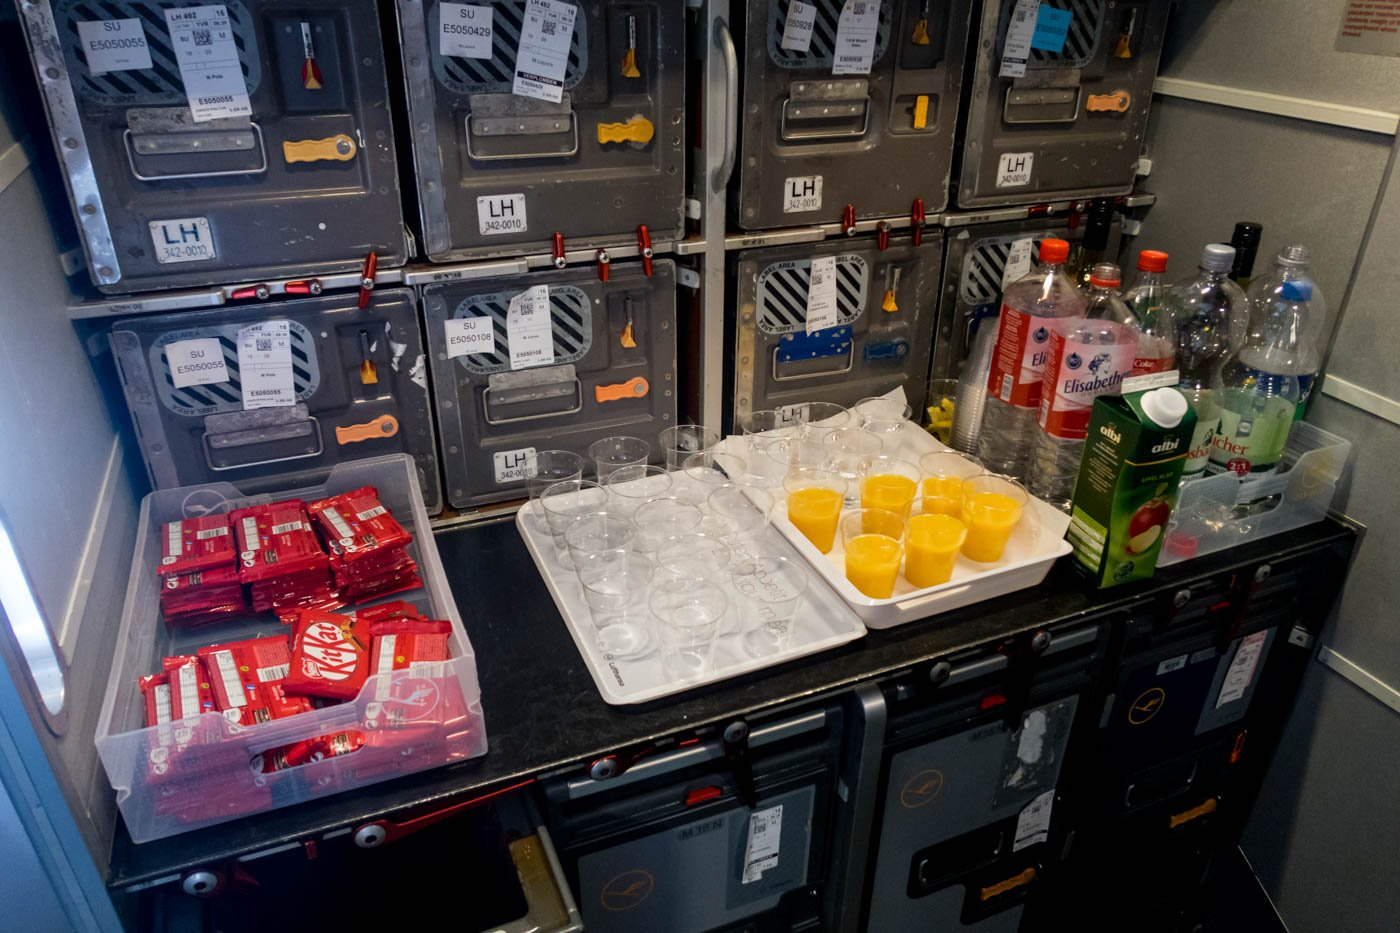 Lufthansa Snack and Drinks